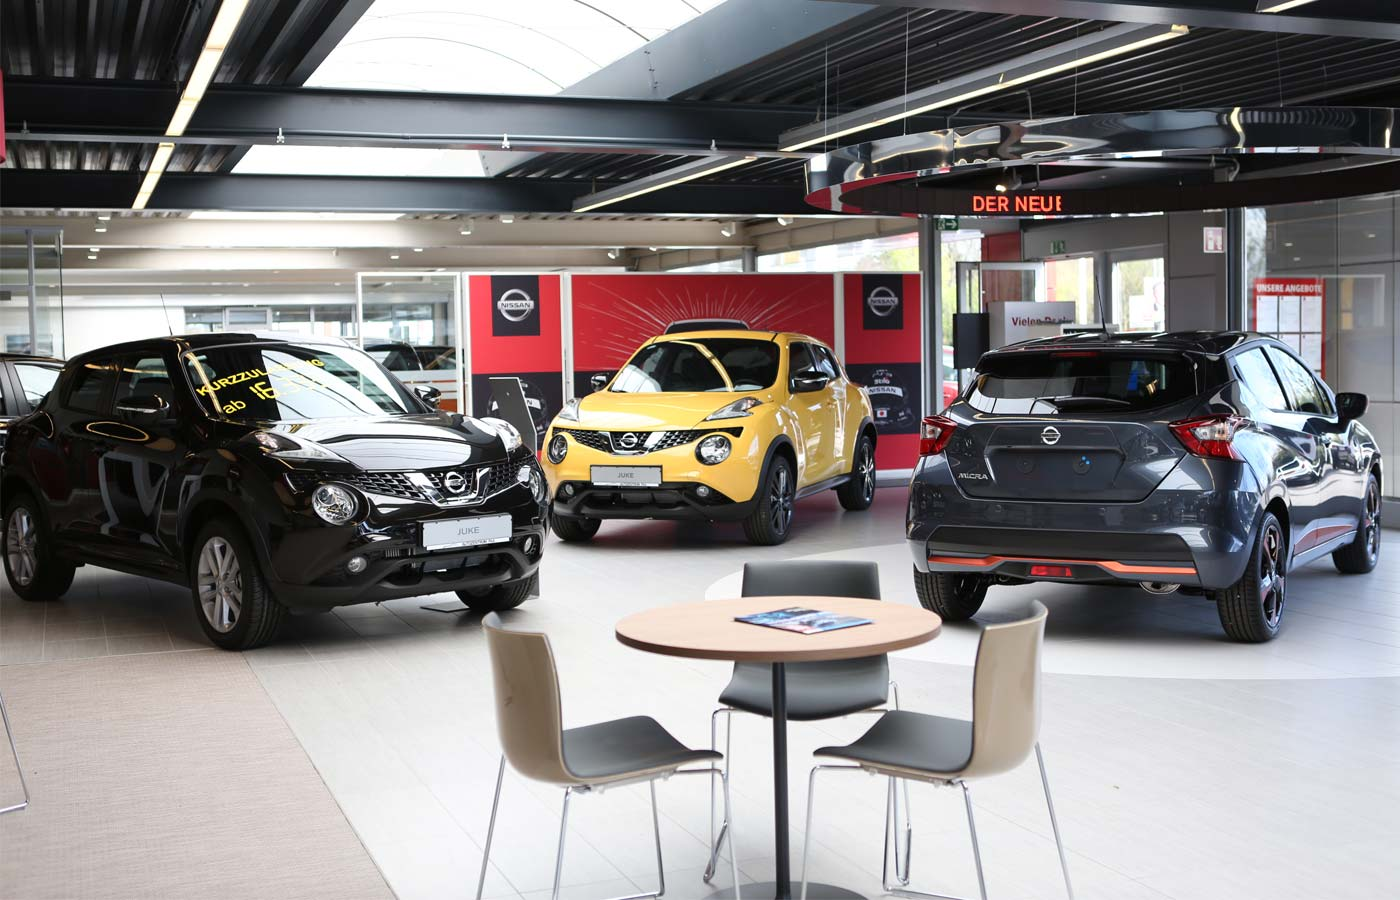 Nissan Showroom 2017 von P&A